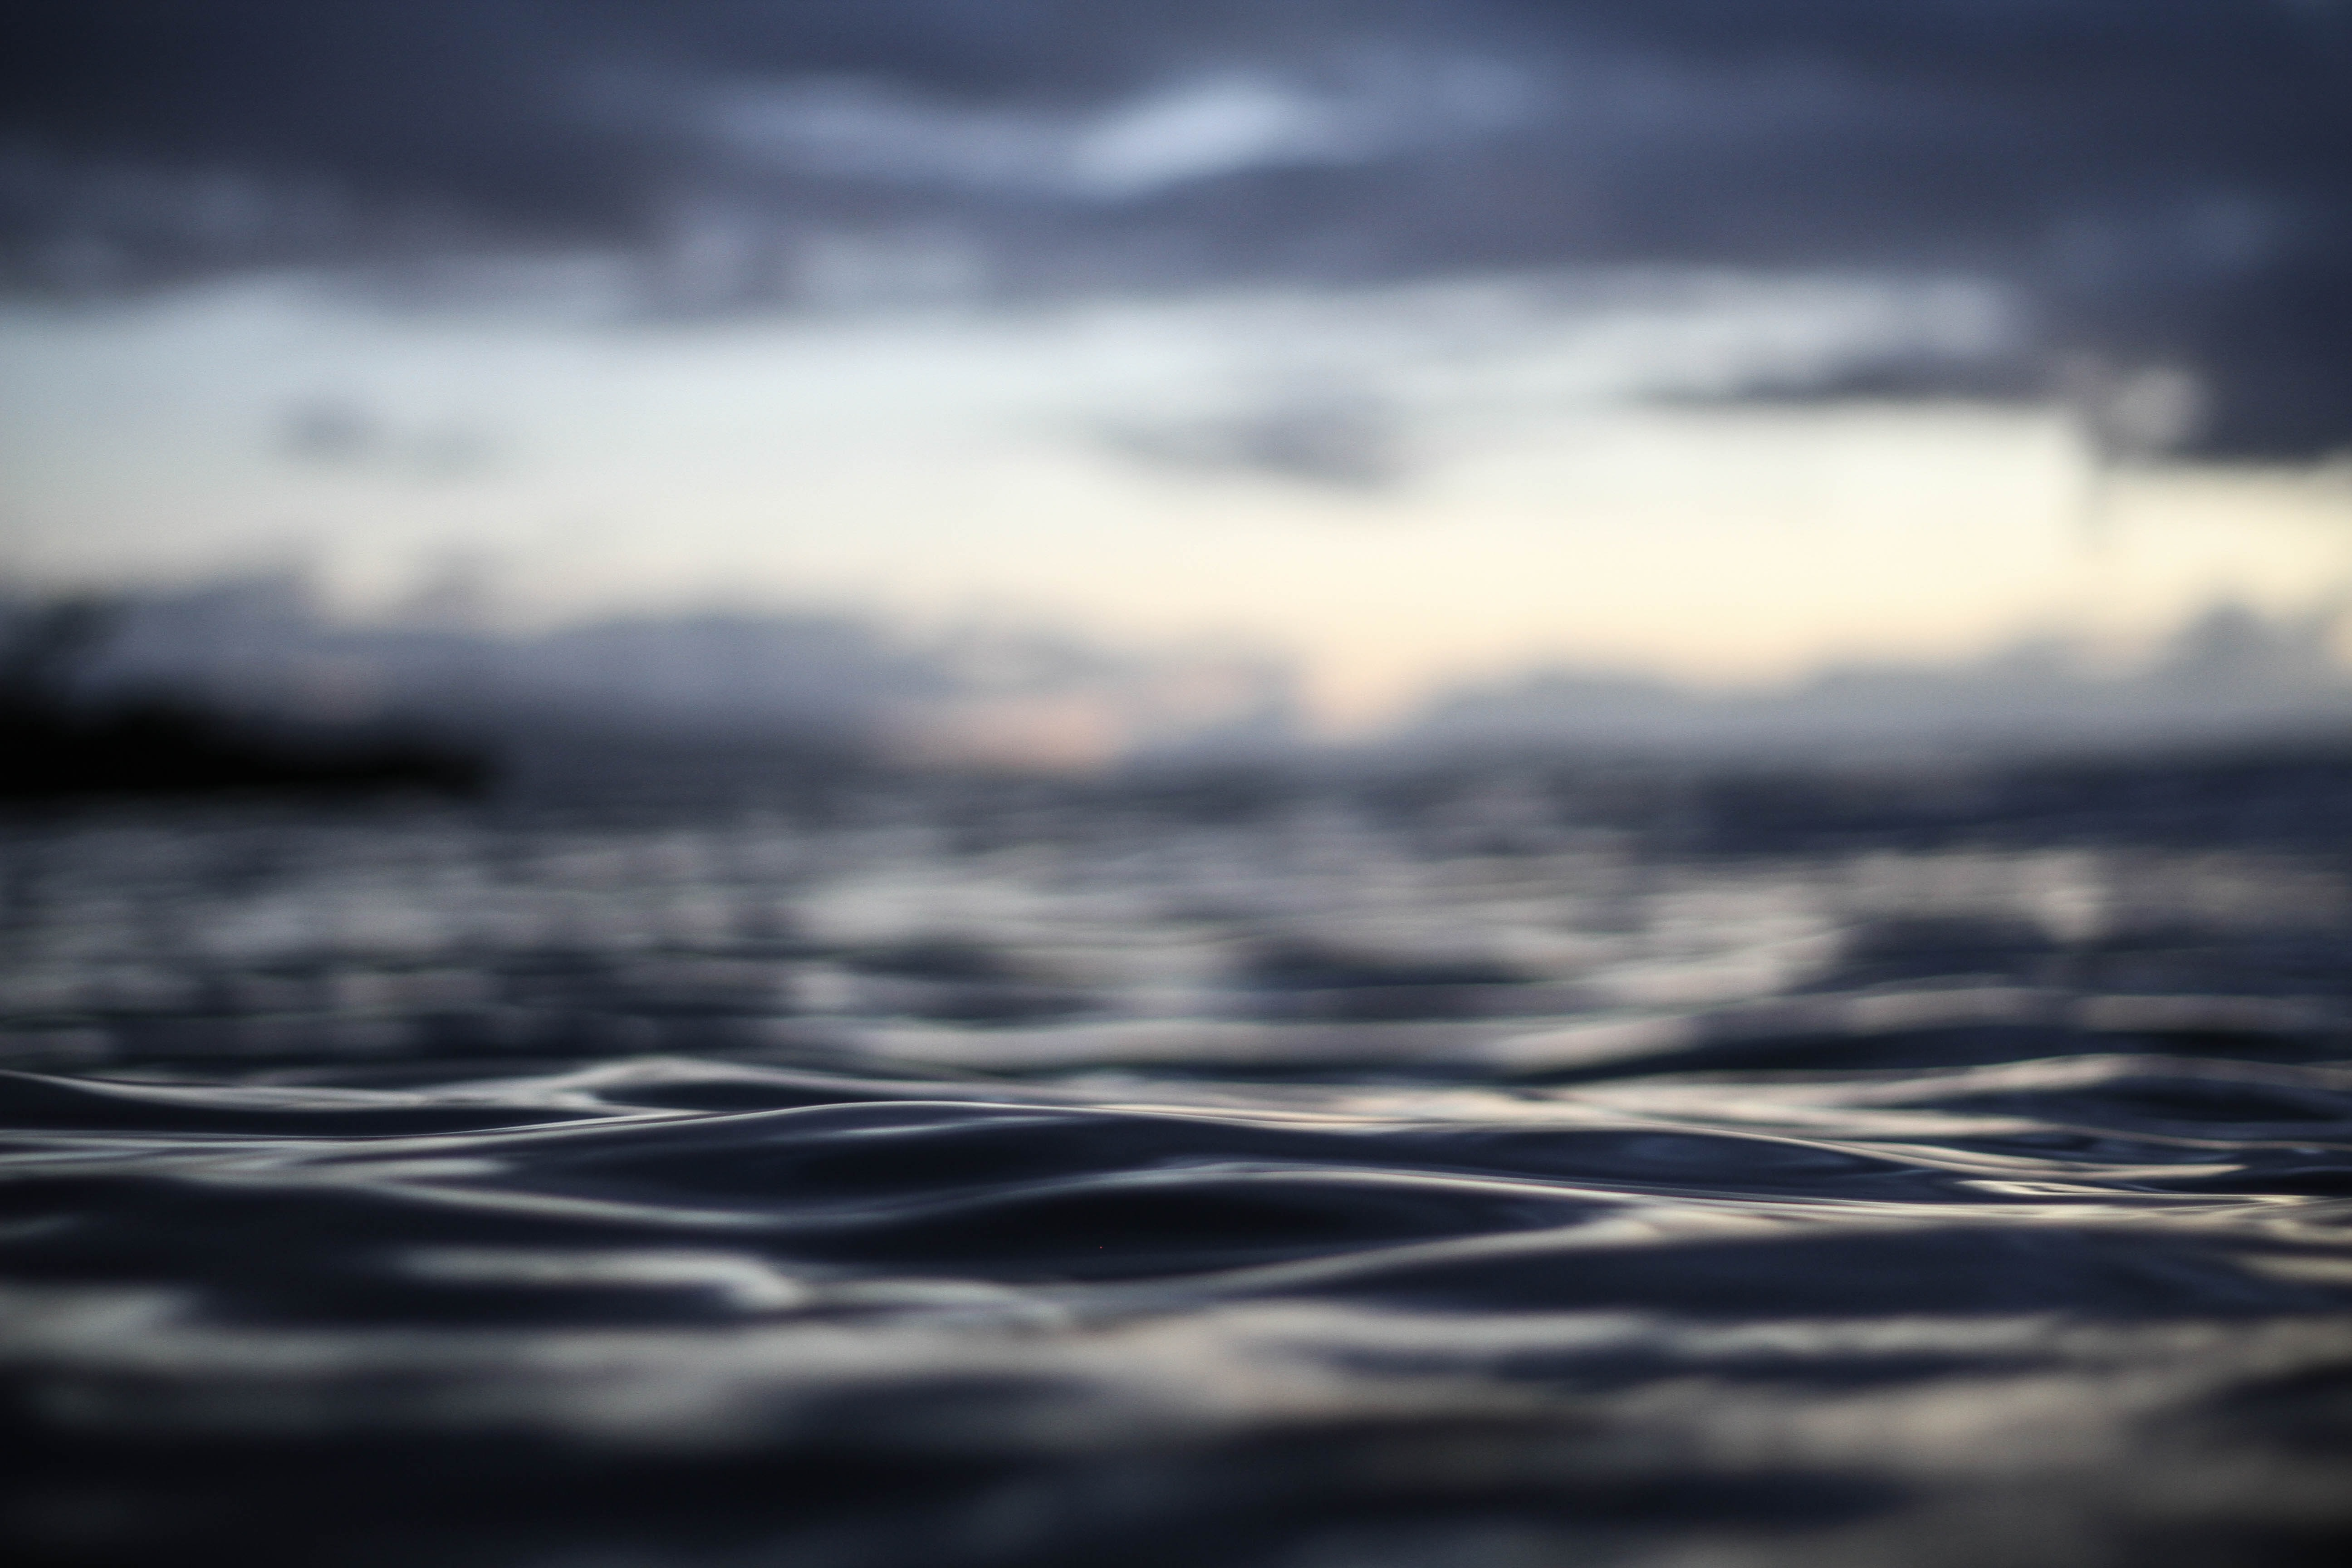 Close up of the dark ocean waters of Waimea Bay under a cloudy sunset